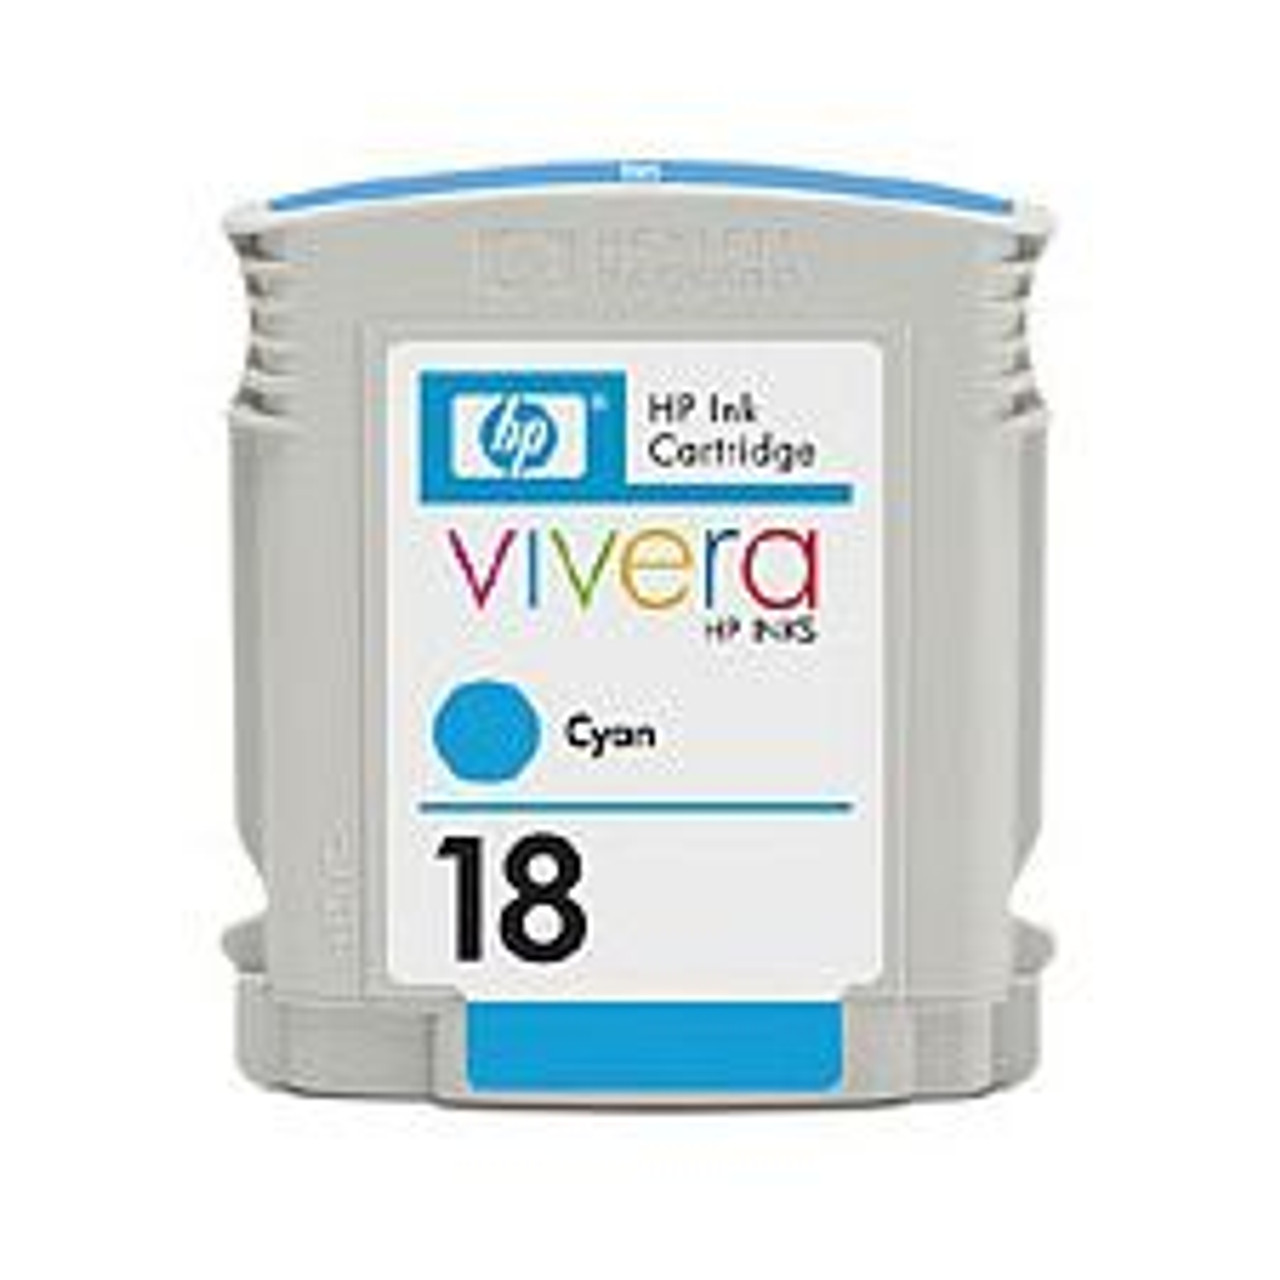 Image for HP 18 Cyan Ink Cartridge 625 pages (C4937A) CX Computer Superstore